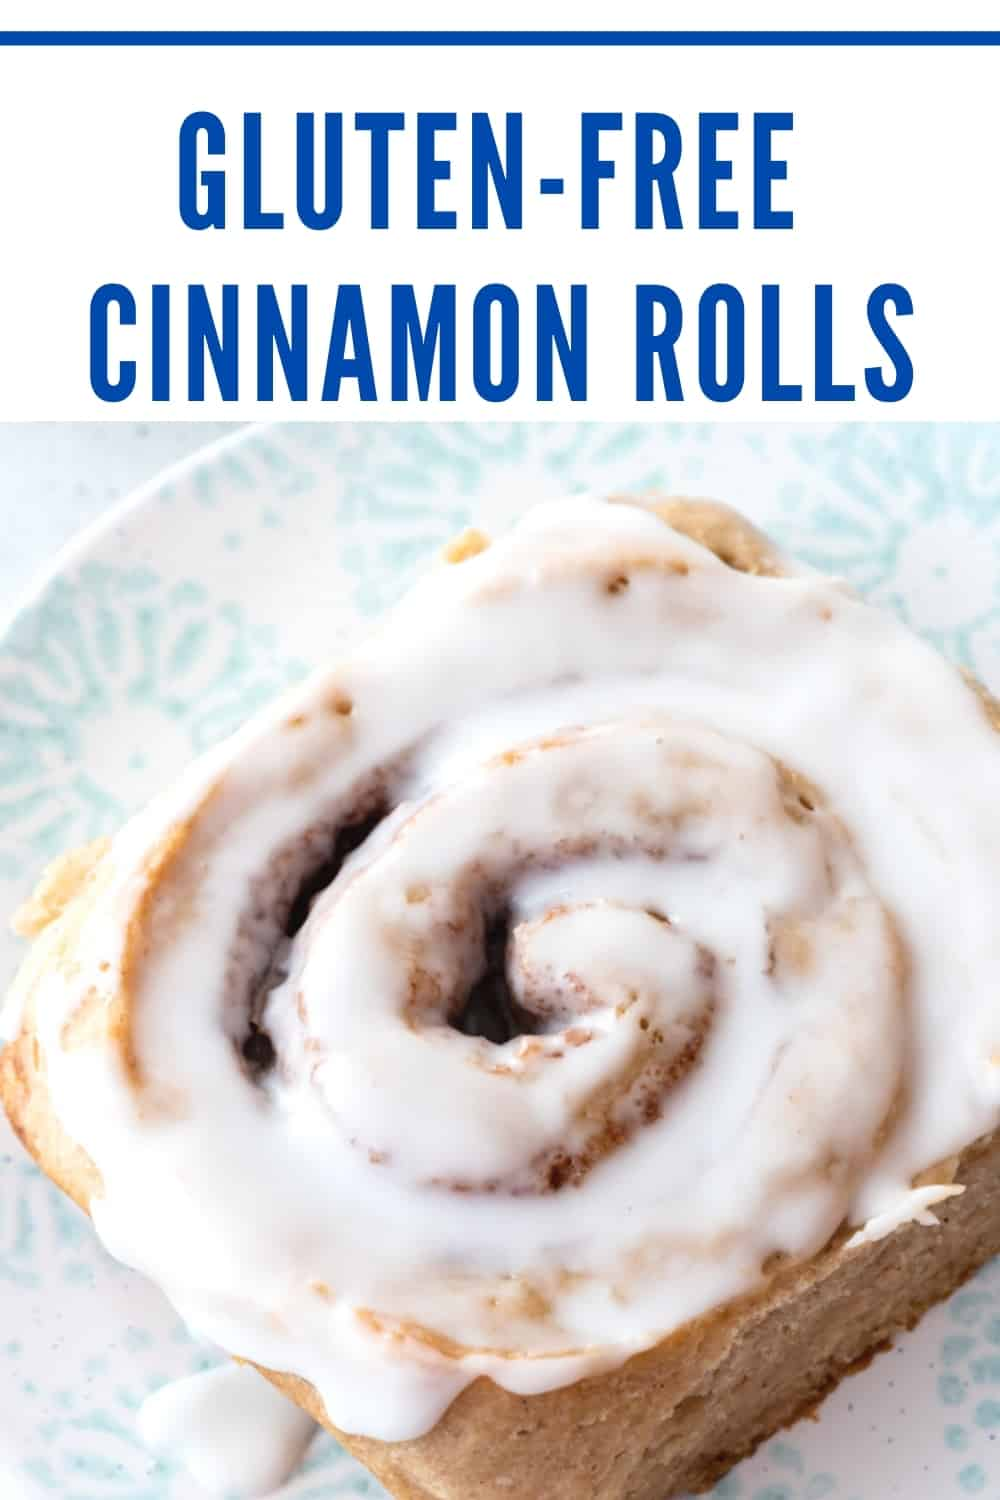 pinterest pin showing iced gluten-free cinnamon roll. Text reads